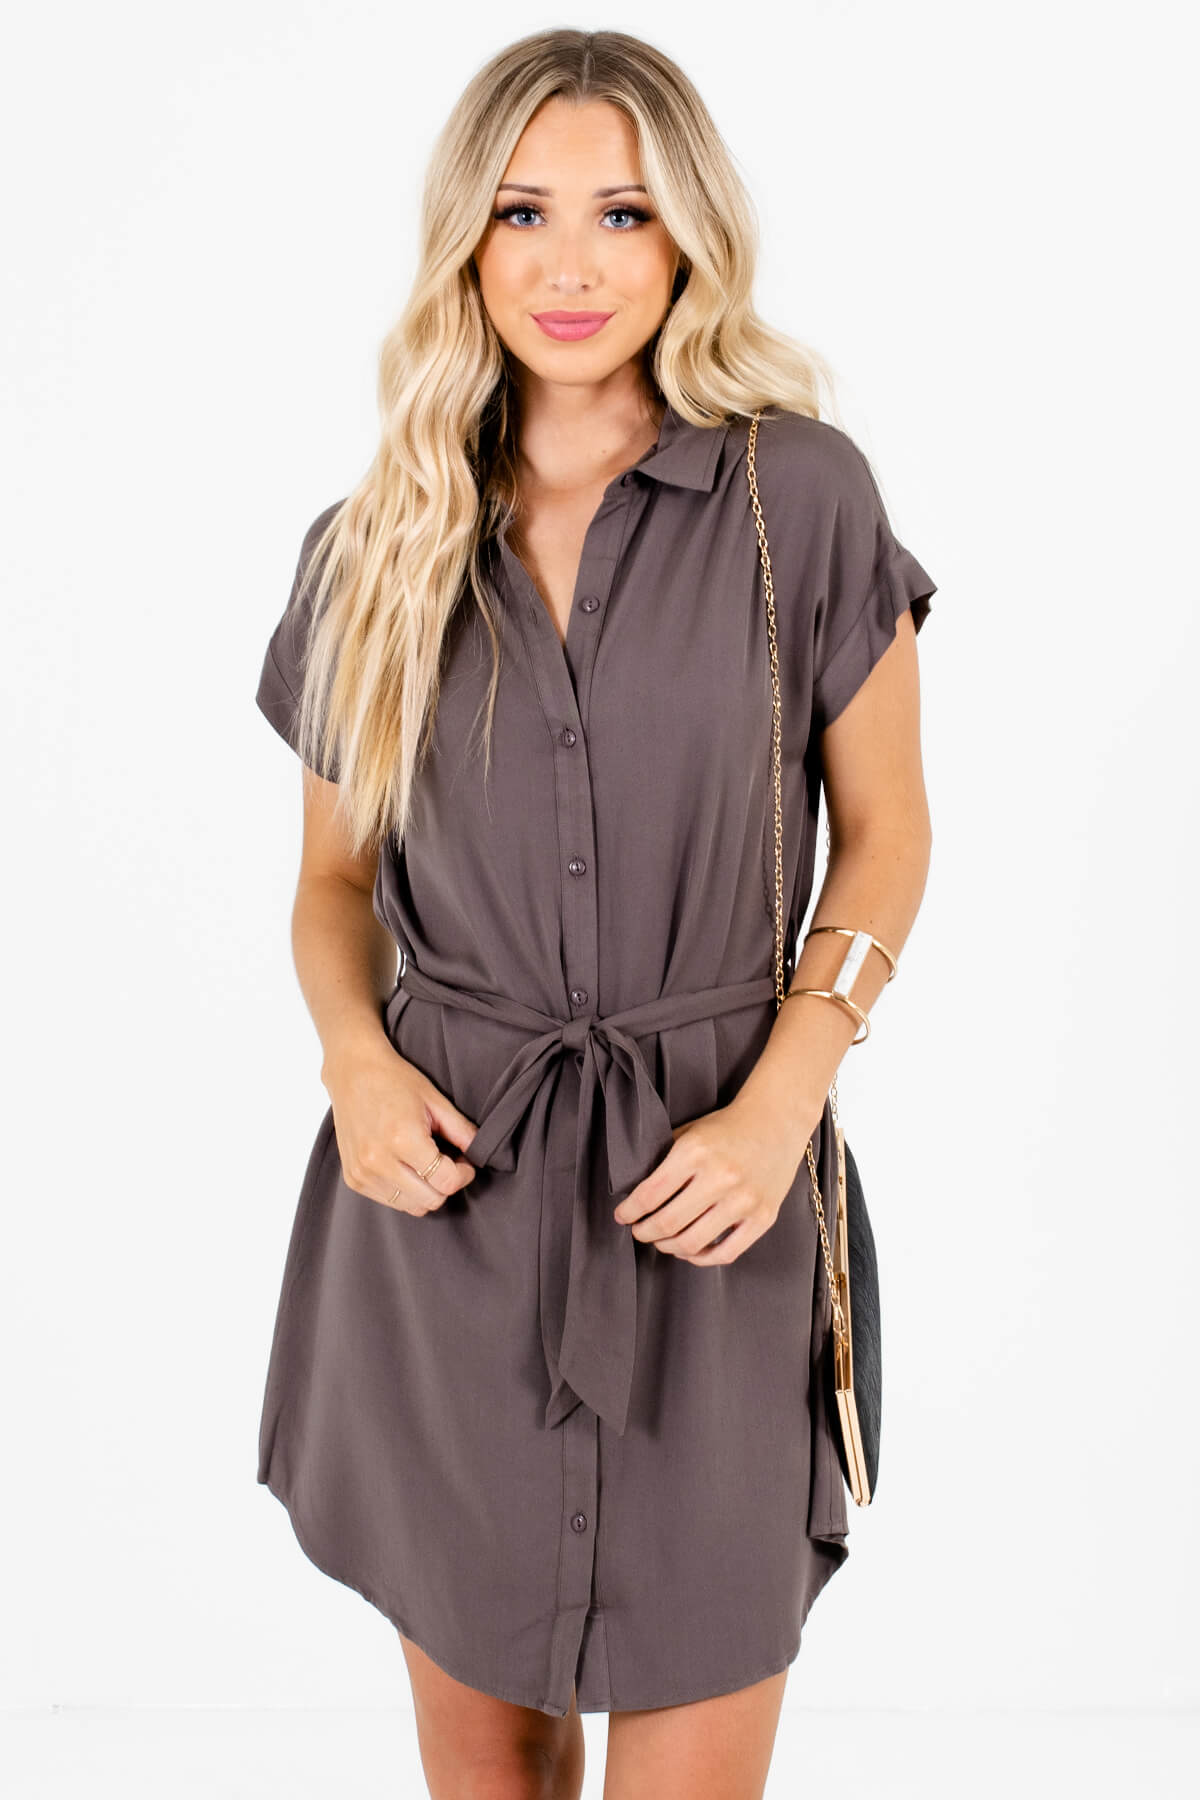 Gray Button-Up Shirt Mini Dresses Affordable Online Boutique